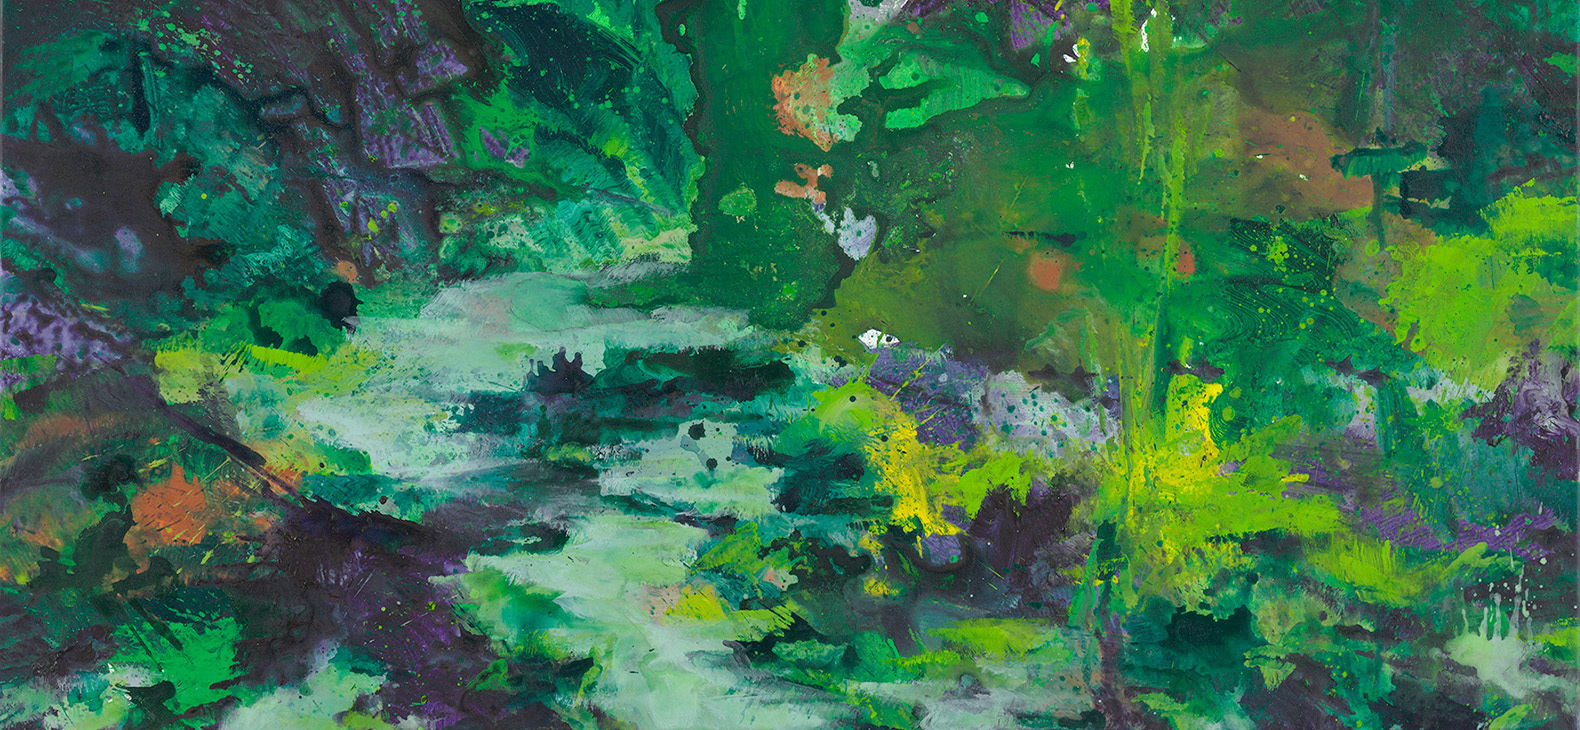 Detail of a painting by Bernd Zimmer; a watercourse and vegetal cover in an expressive manner of painting are visible; green is the dominant color